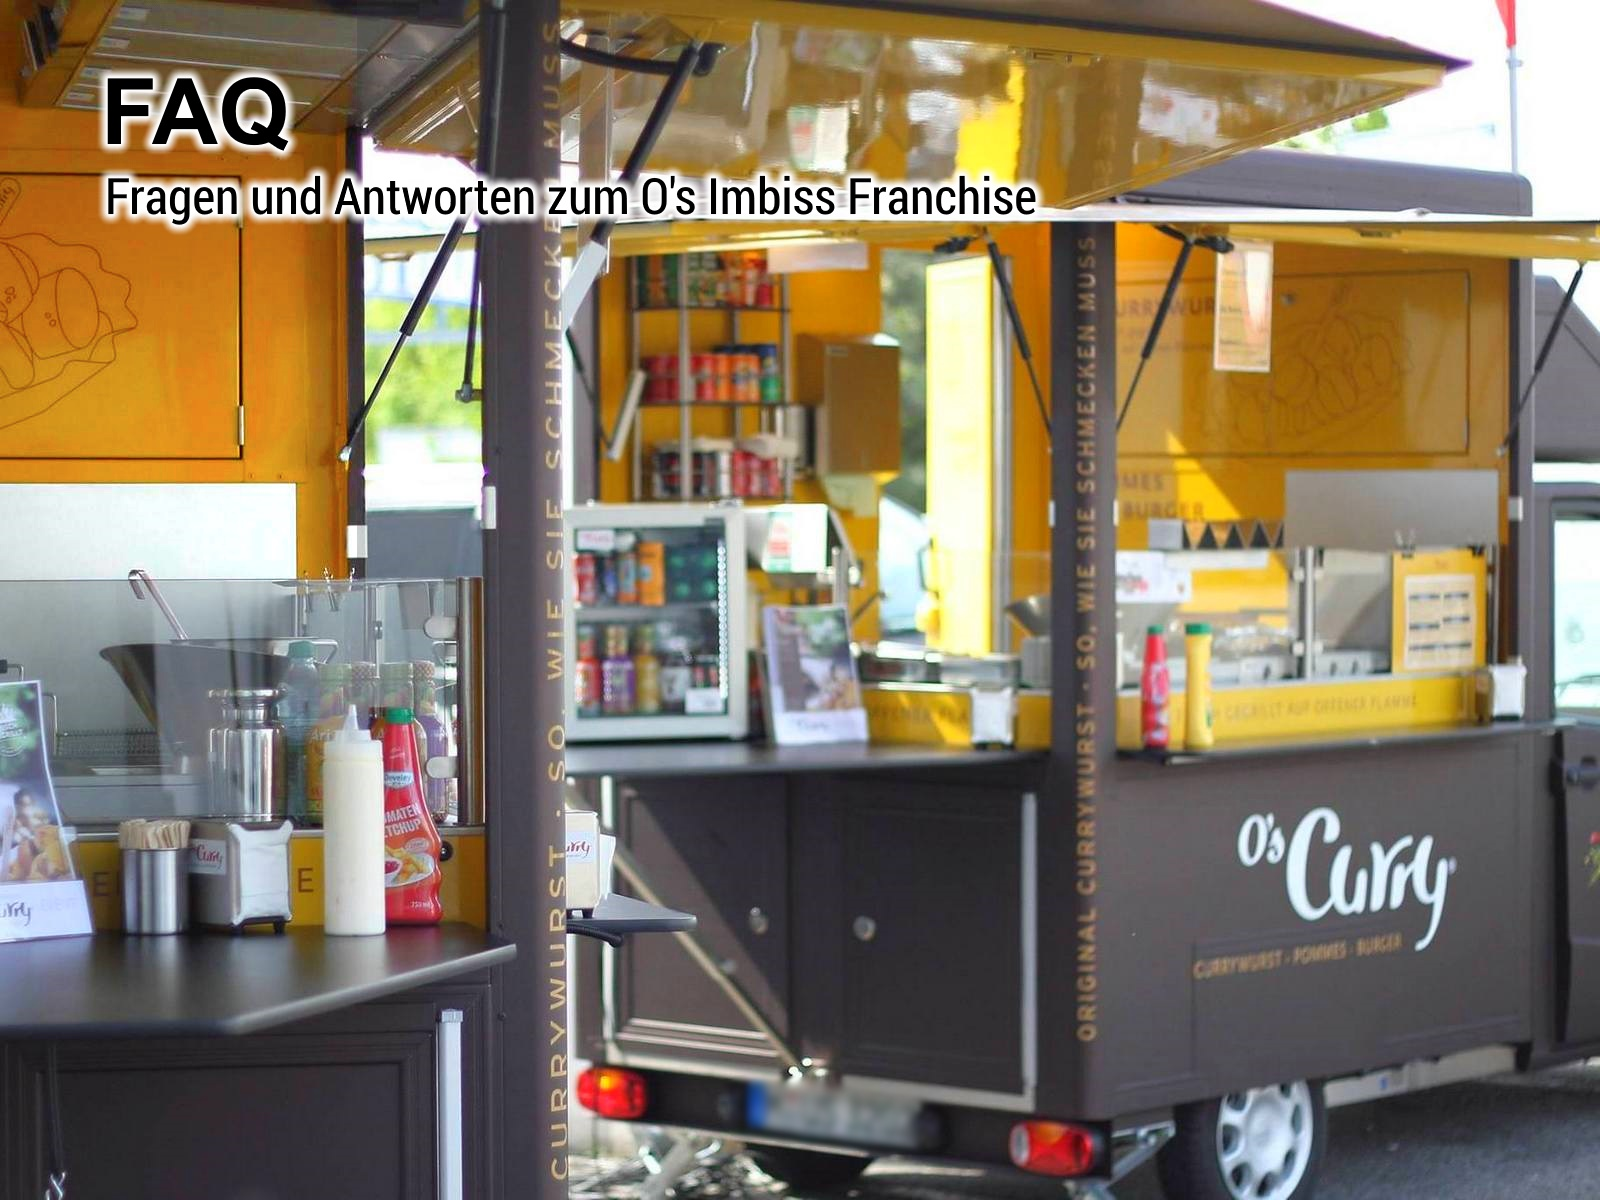 FAQ Os Multi Catering mit Food Truck